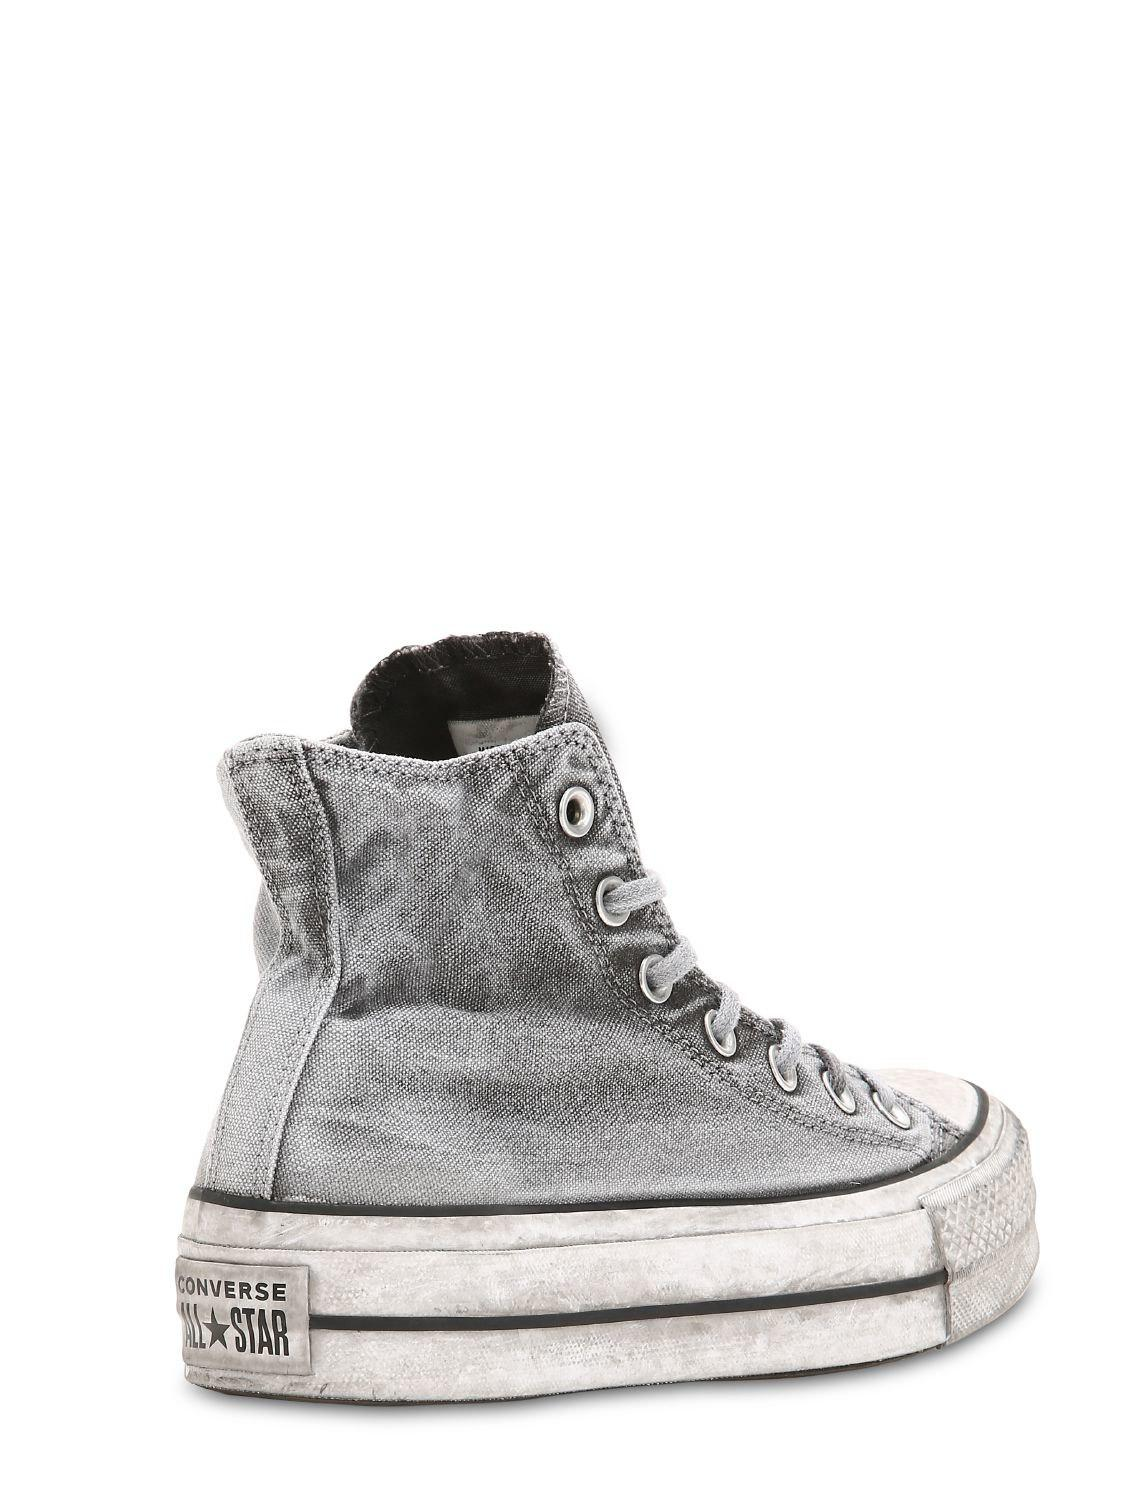 0fd7b093a95785 Converse Chuck Taylor High Lift Canvas Sneakers in Gray - Lyst